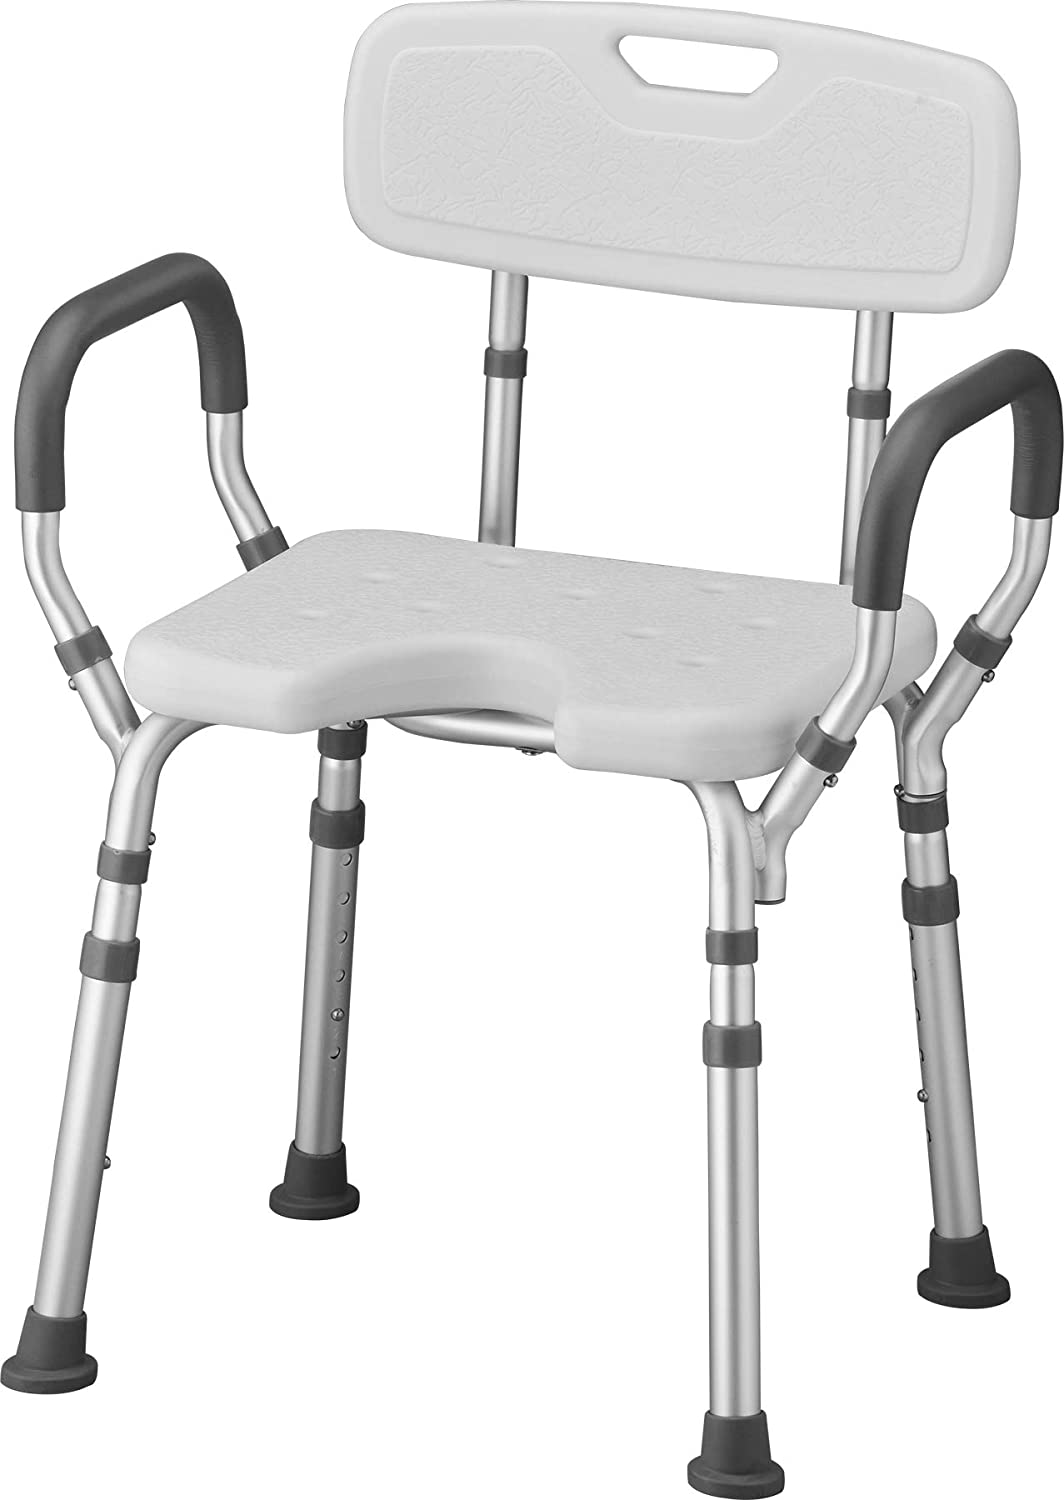 NOVA Shower & Bath Chair with Back & Arms & Hygienic Design, Quick & Easy Tools Free Assembly, Lightweight & Seat Height Adjustable, Great for Travel: Health & Personal Care